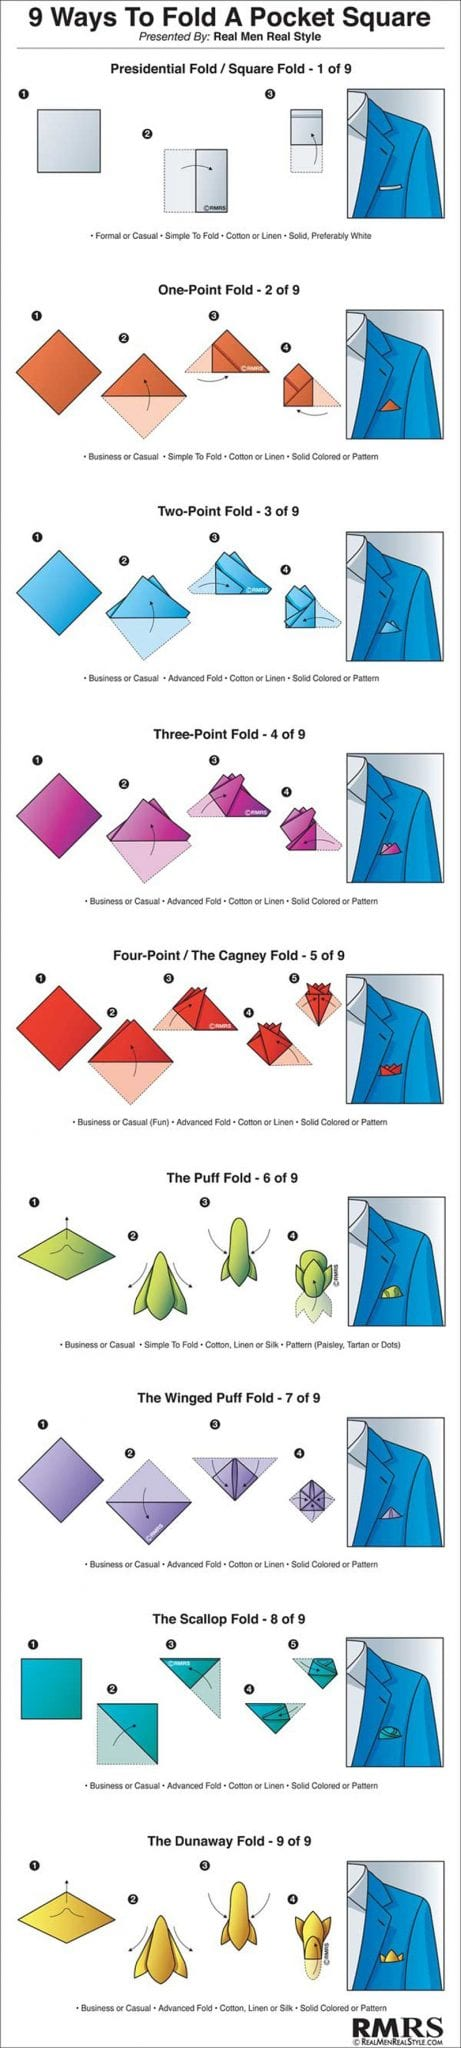 info graphic on folding a pocket square